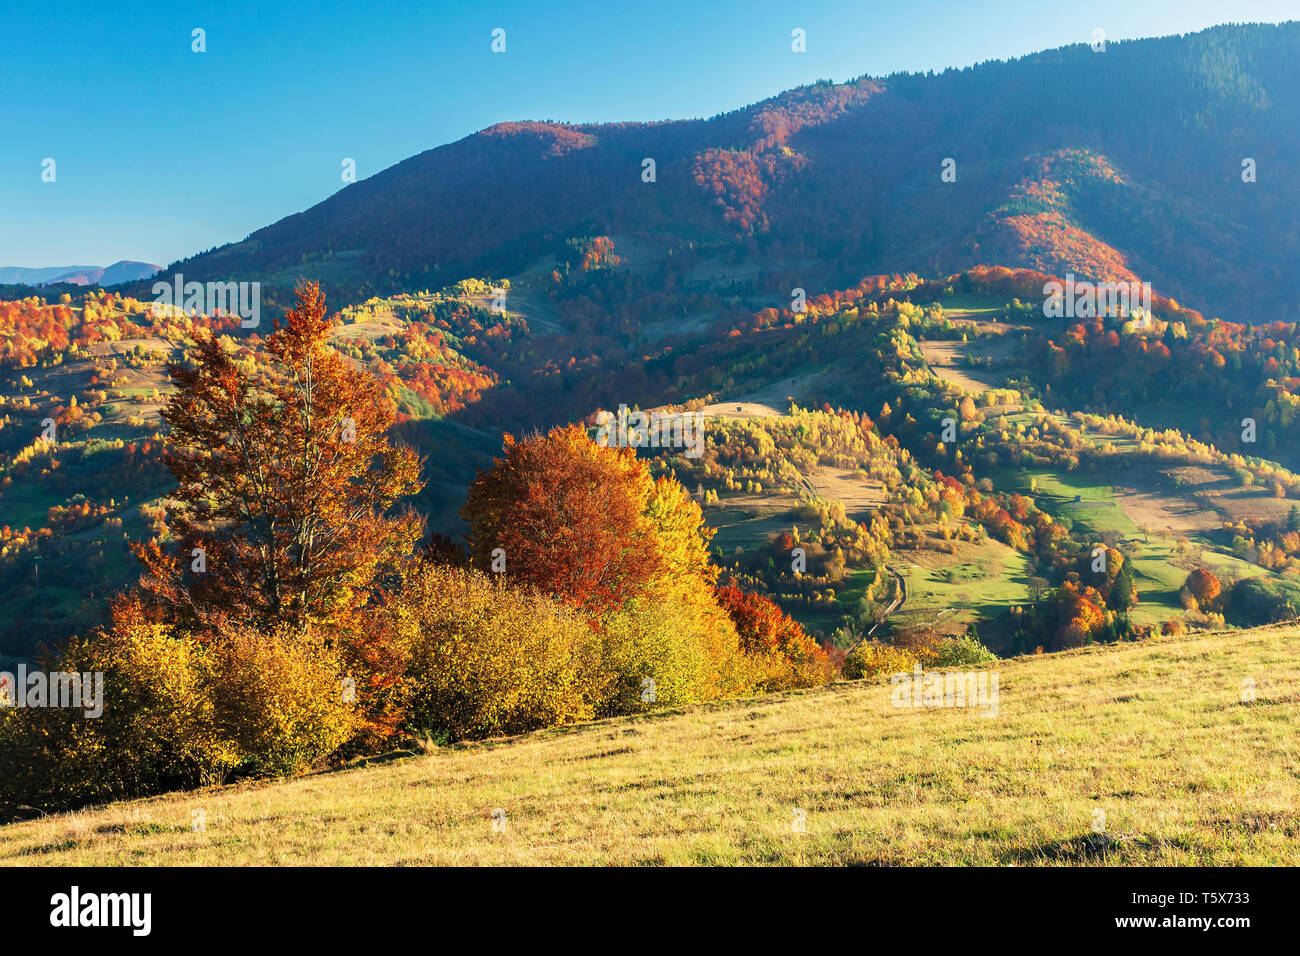 wonderful autumn afternoon in mountains. beautiful countryside scenery with trees in red foliage on the hills; rural area of carpathians. clear blue s - Stock Image